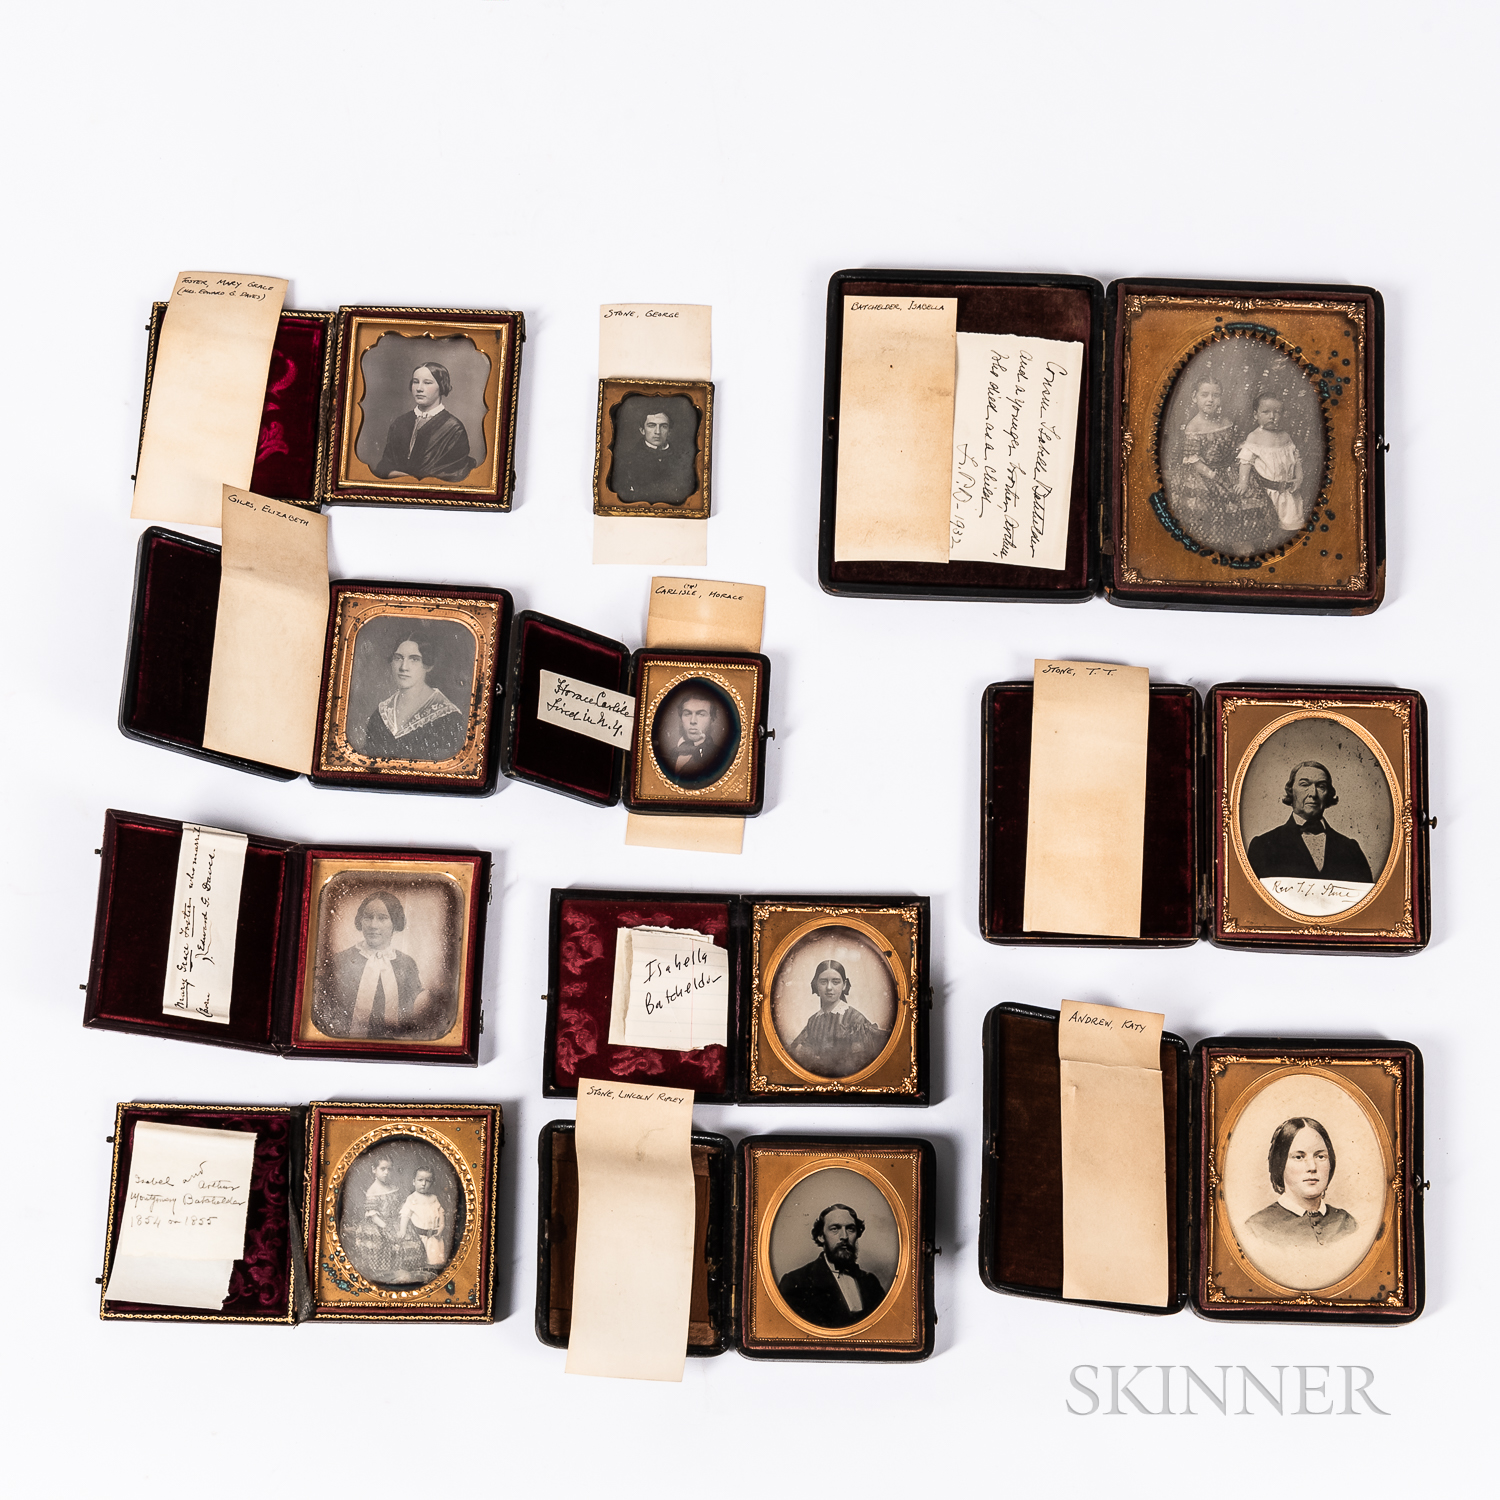 Eleven Identified Photographs of Stone, Batchelder, Foster, Giles, Carlisle and Andrew Family Members,   Mid-19th Century.